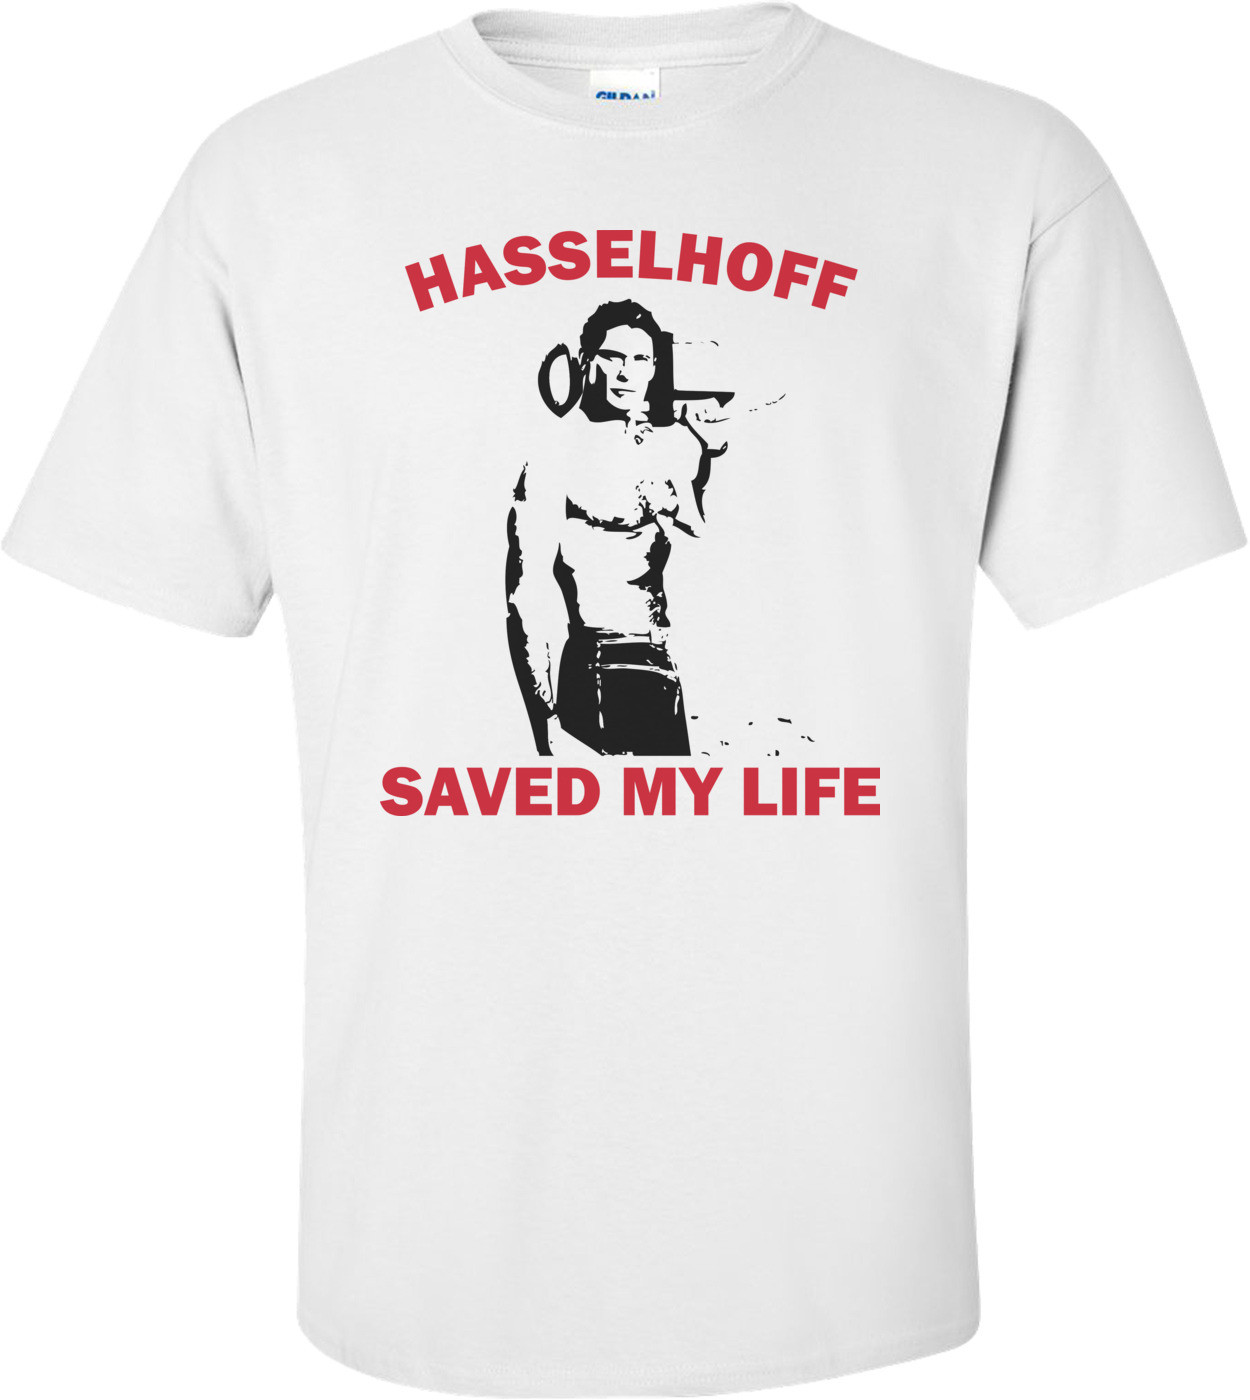 Hasselhoff Saved My Life T-shirt